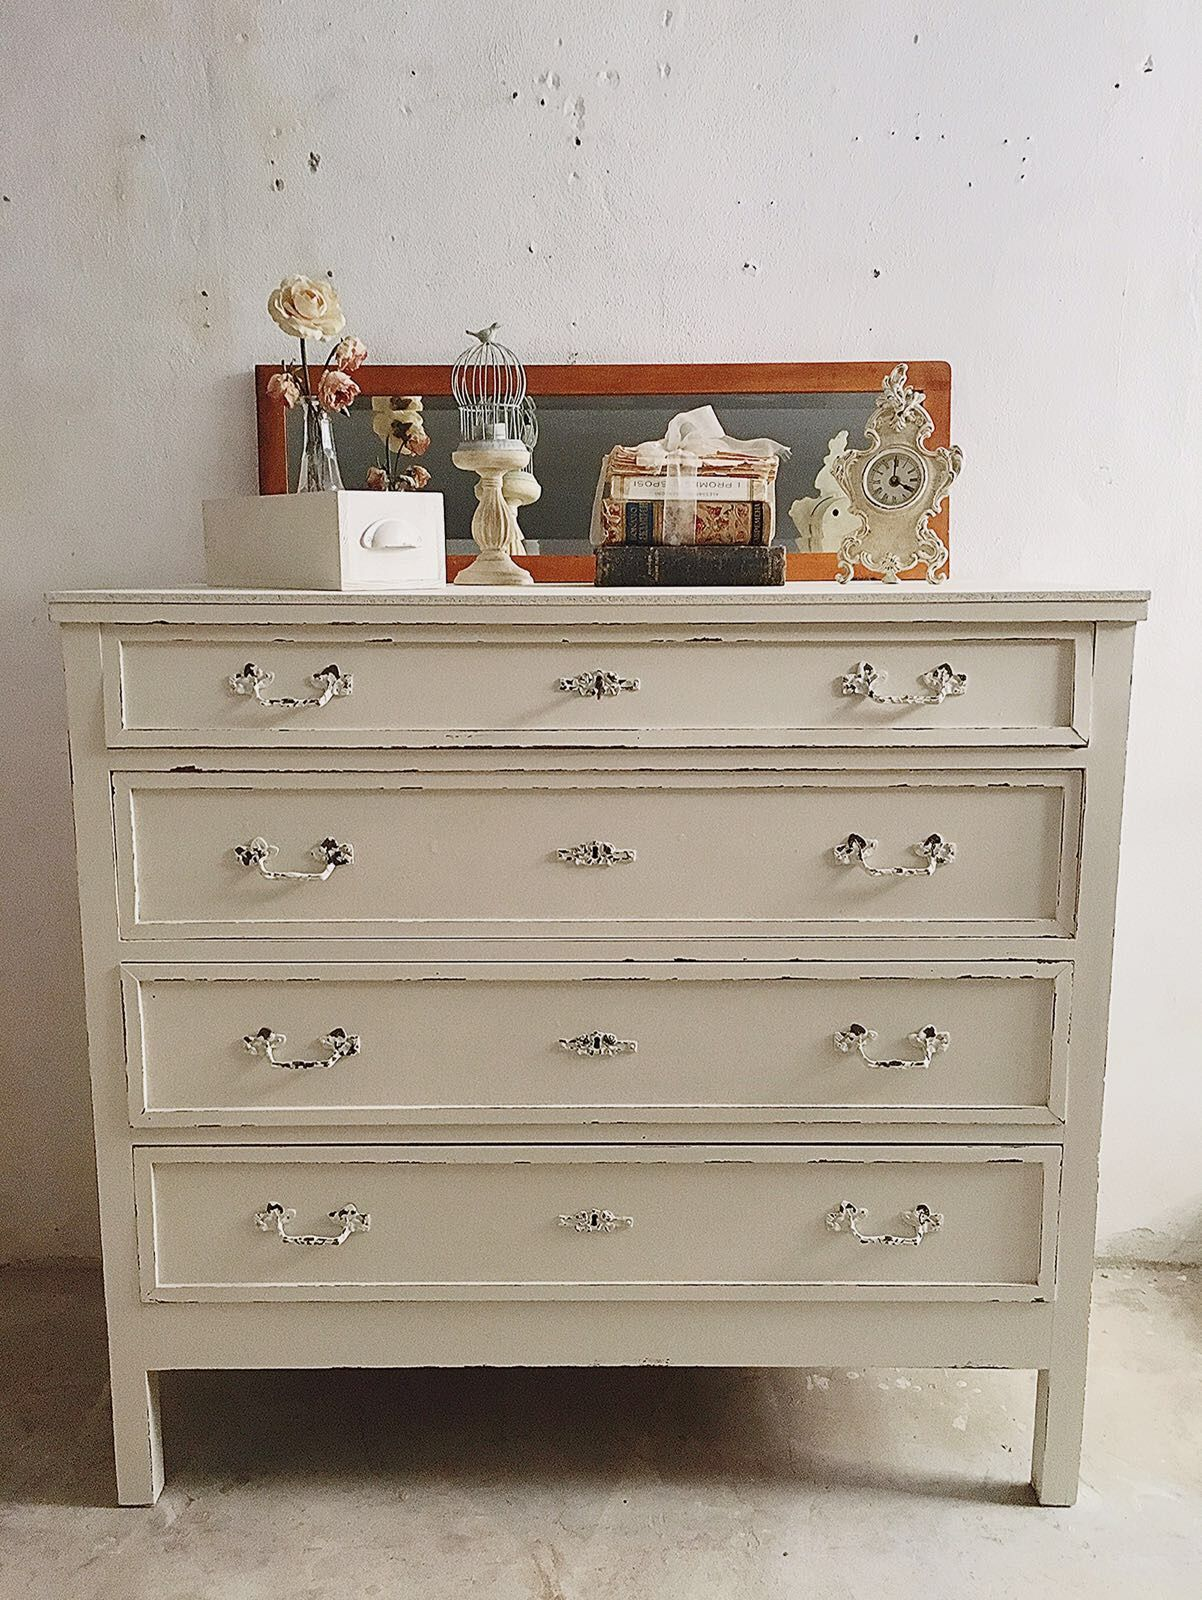 antique Chest of drawers shabby chic Cassettiera shabby chic ...